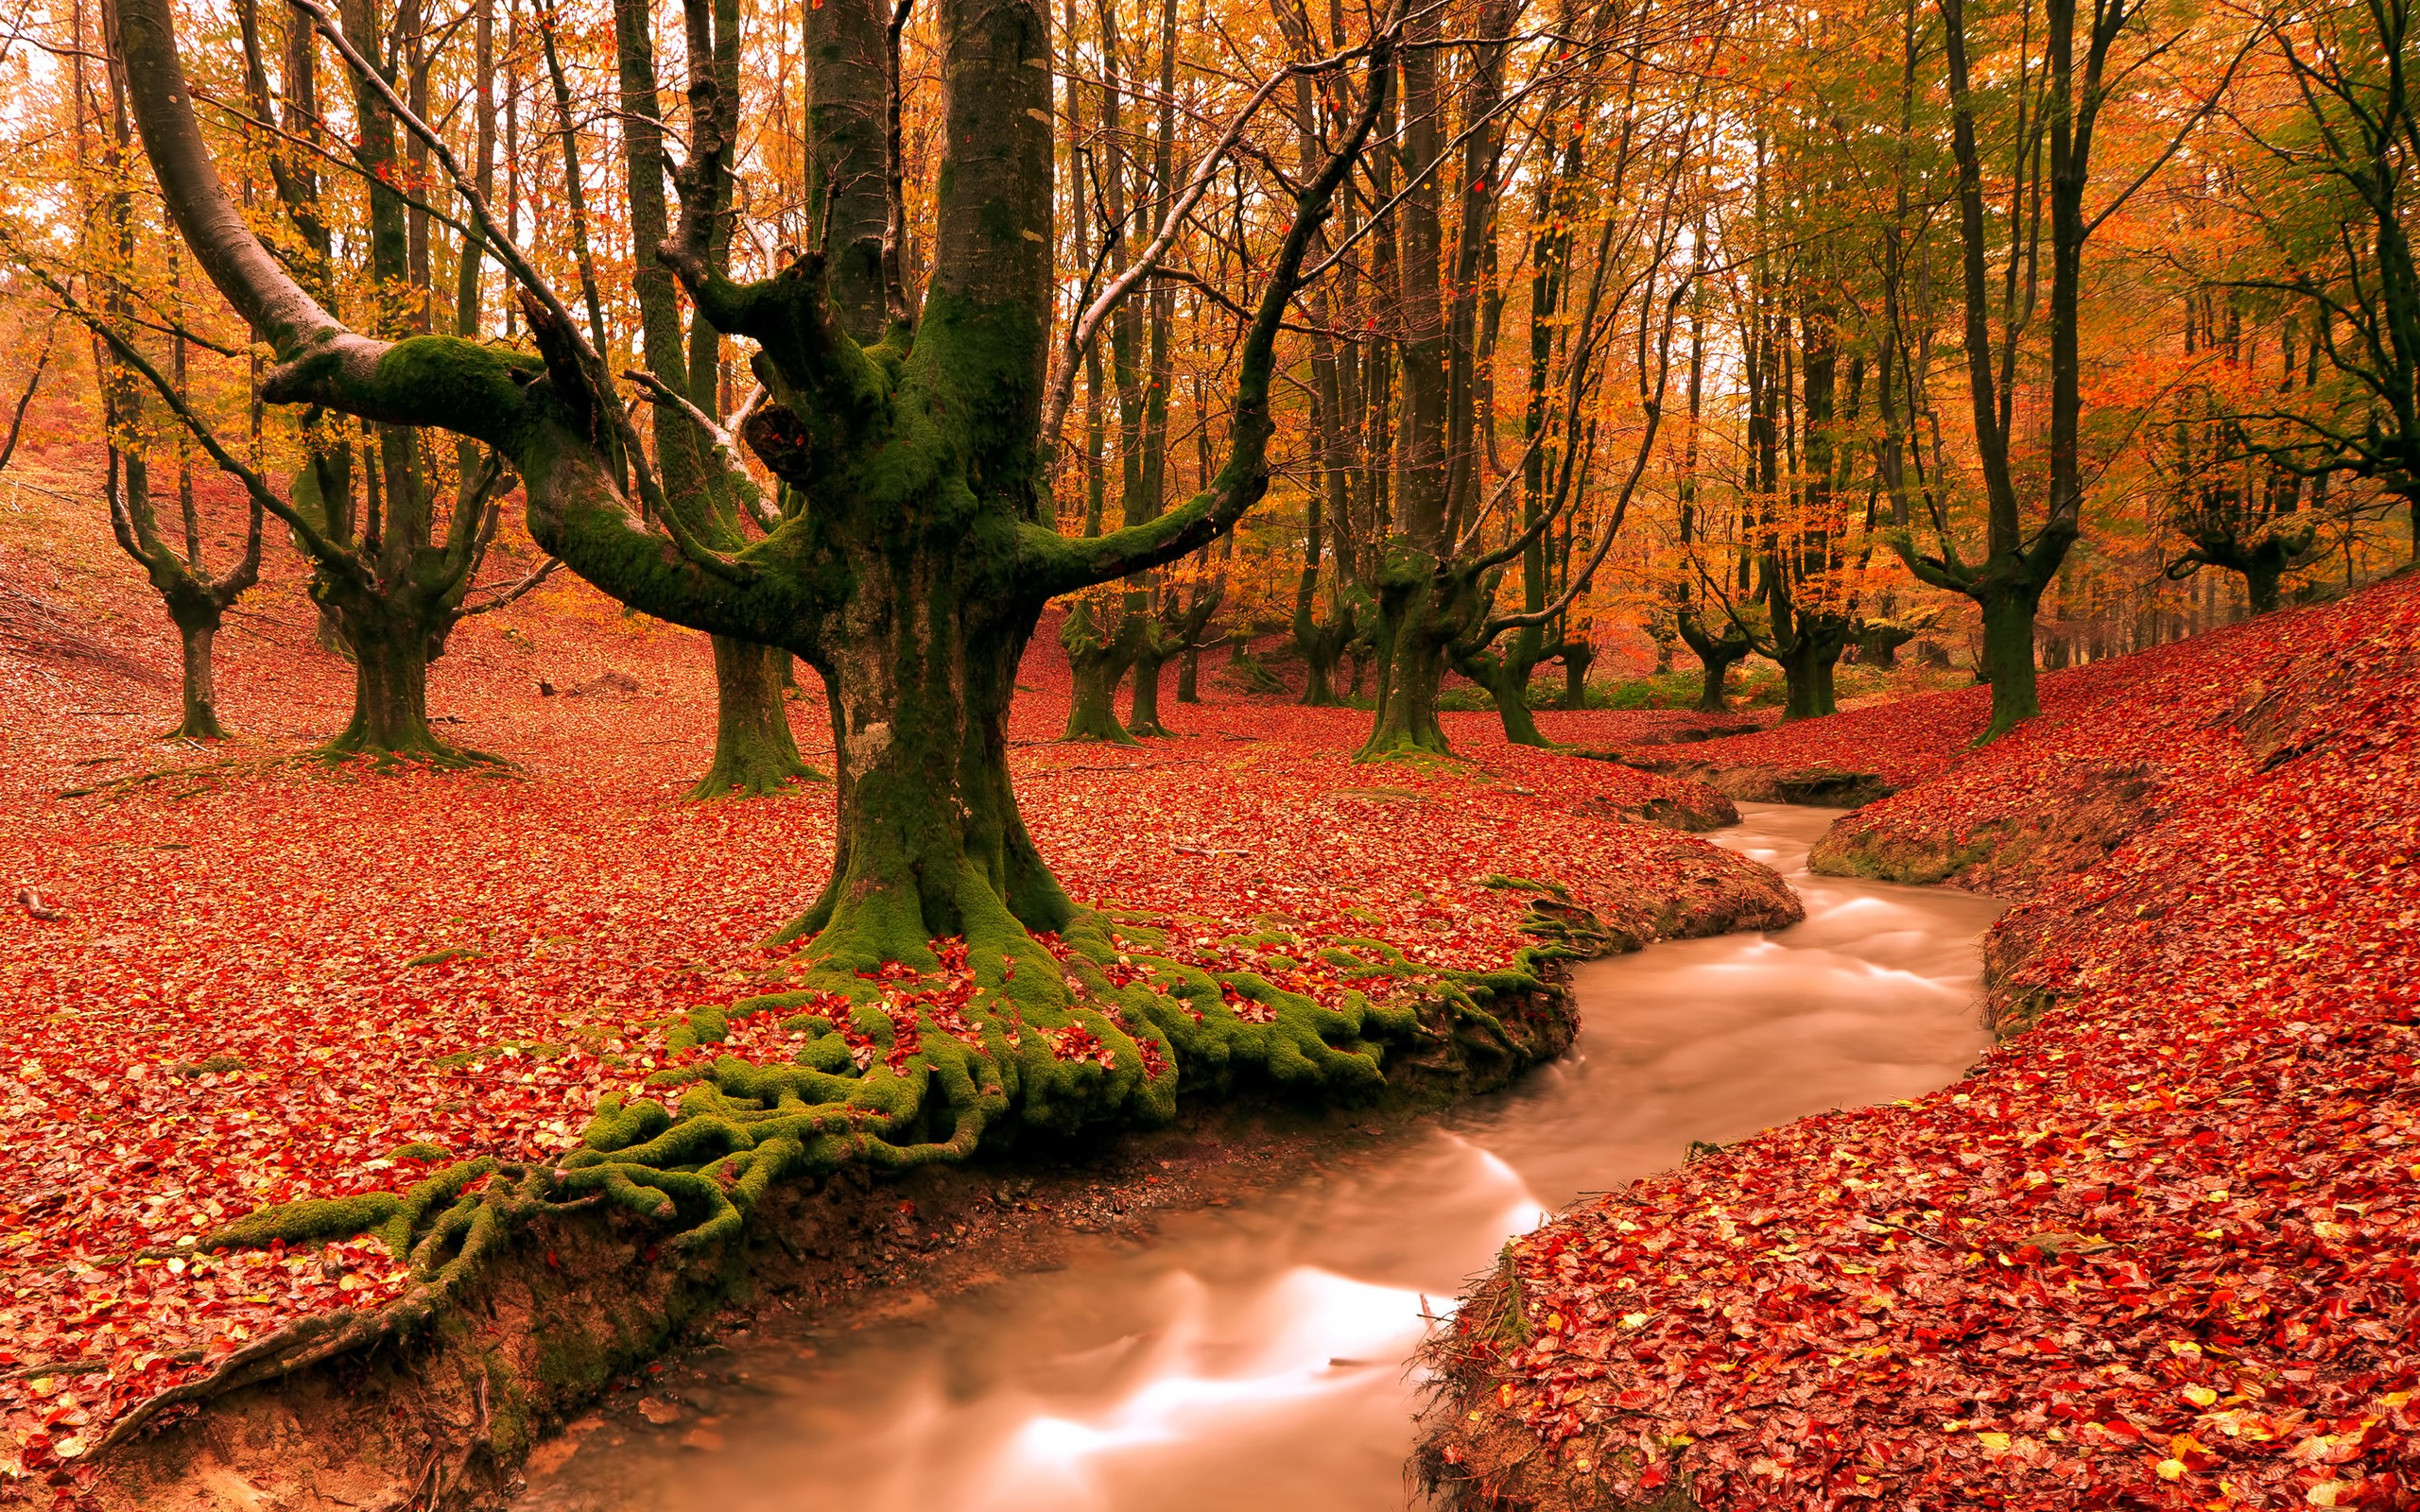 Fall Android Wallpaper Fall Desktop Wallpaper ① Download Free Awesome High Resolution